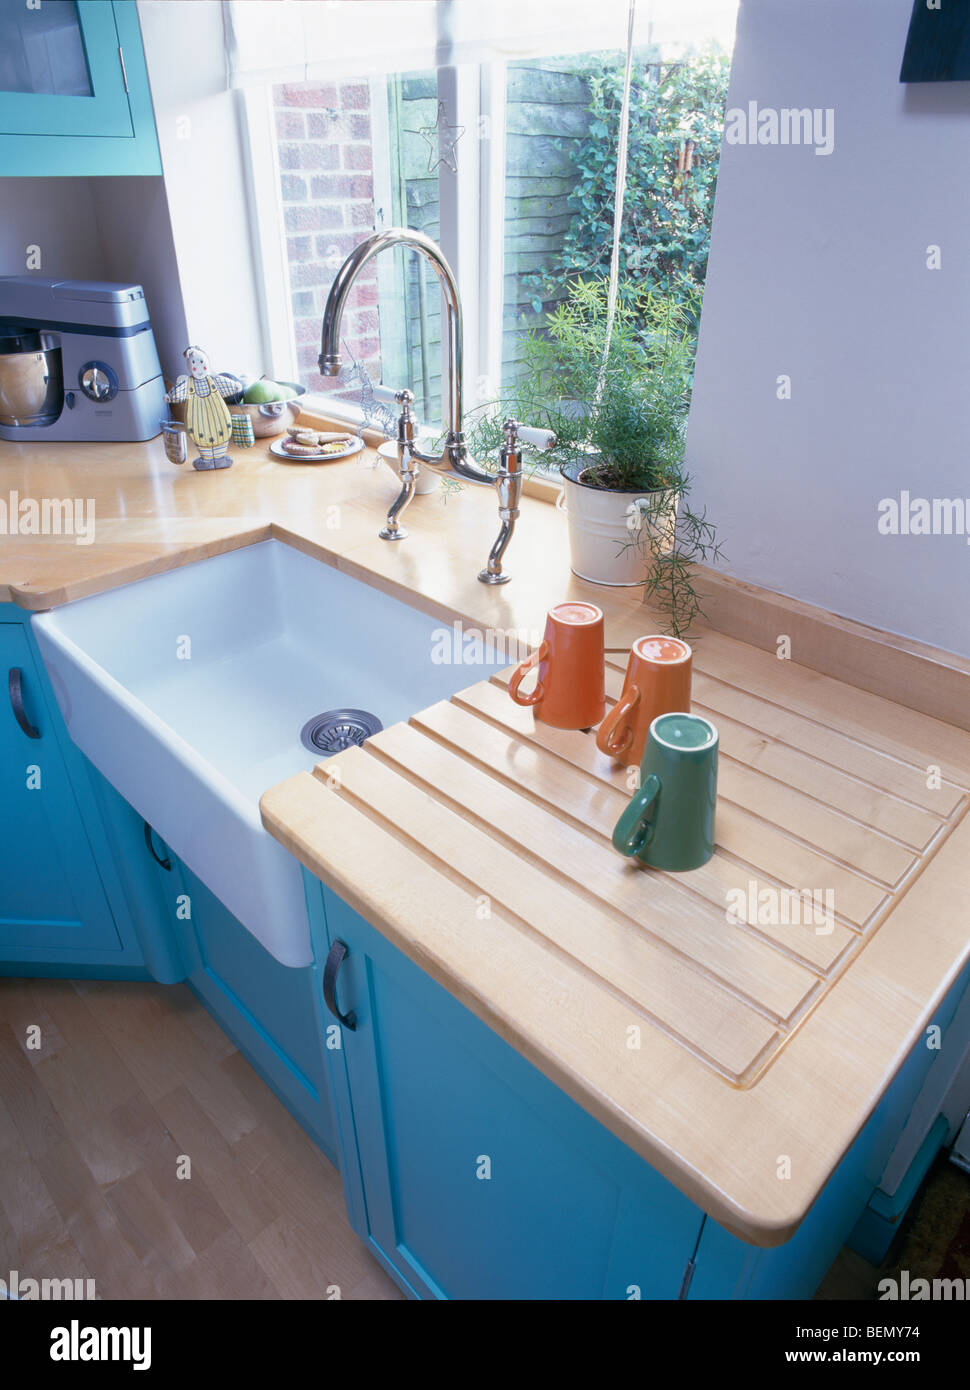 kitchen draining board sink and faucet close up of cups on wooden beside white ceramic in pale turquoise